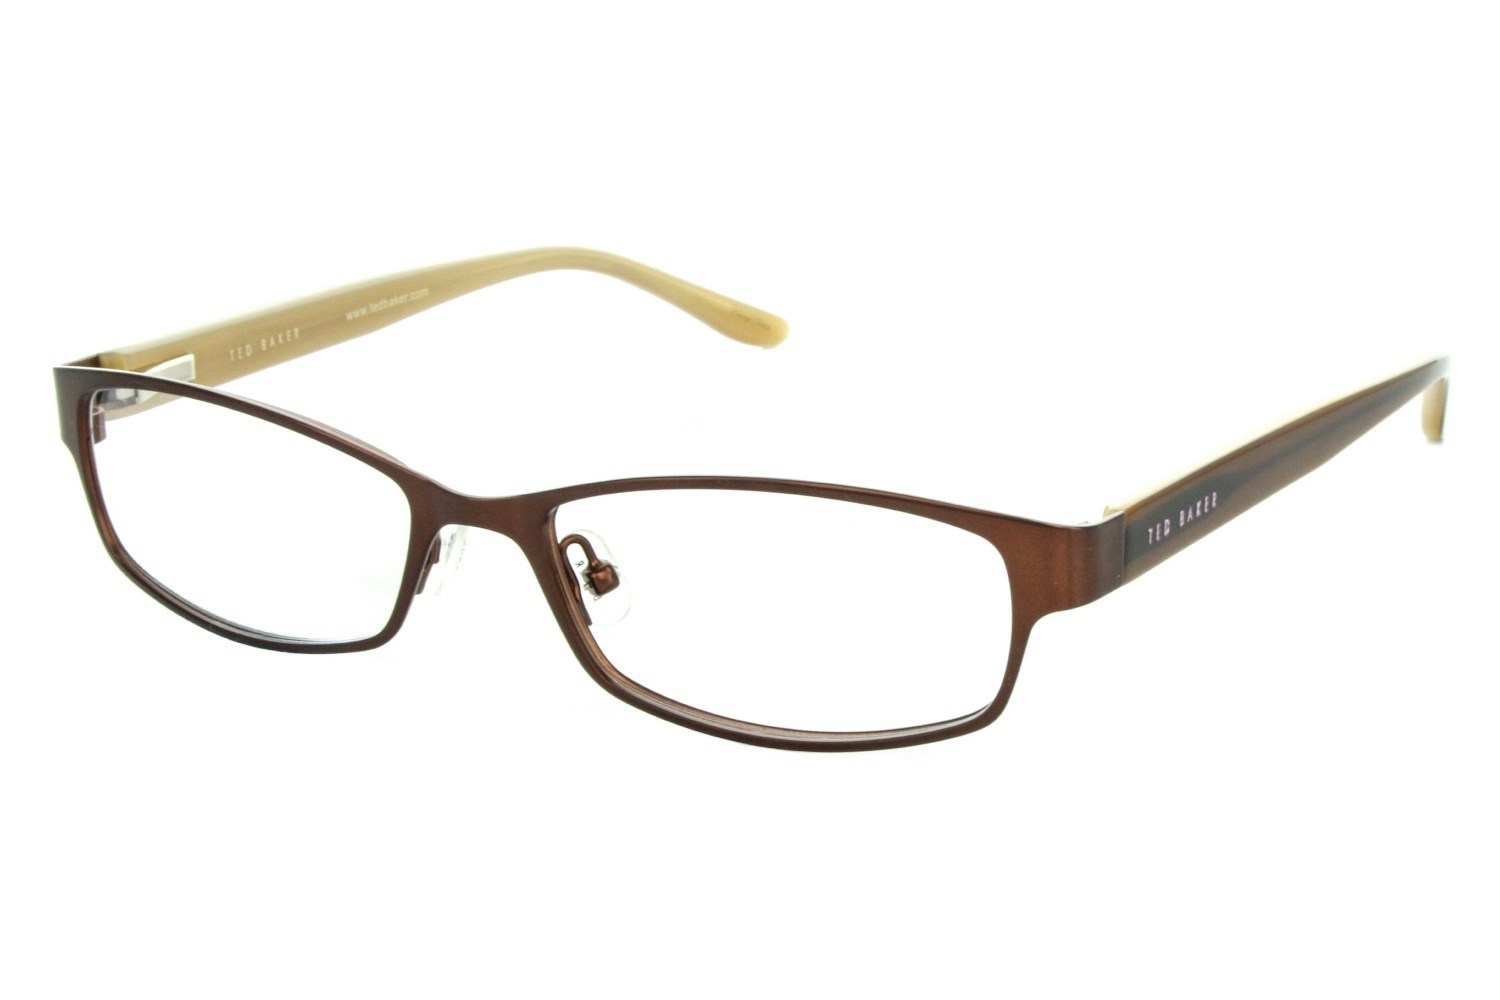 Ted Baker Vapor Prescription Eyeglasses Frames